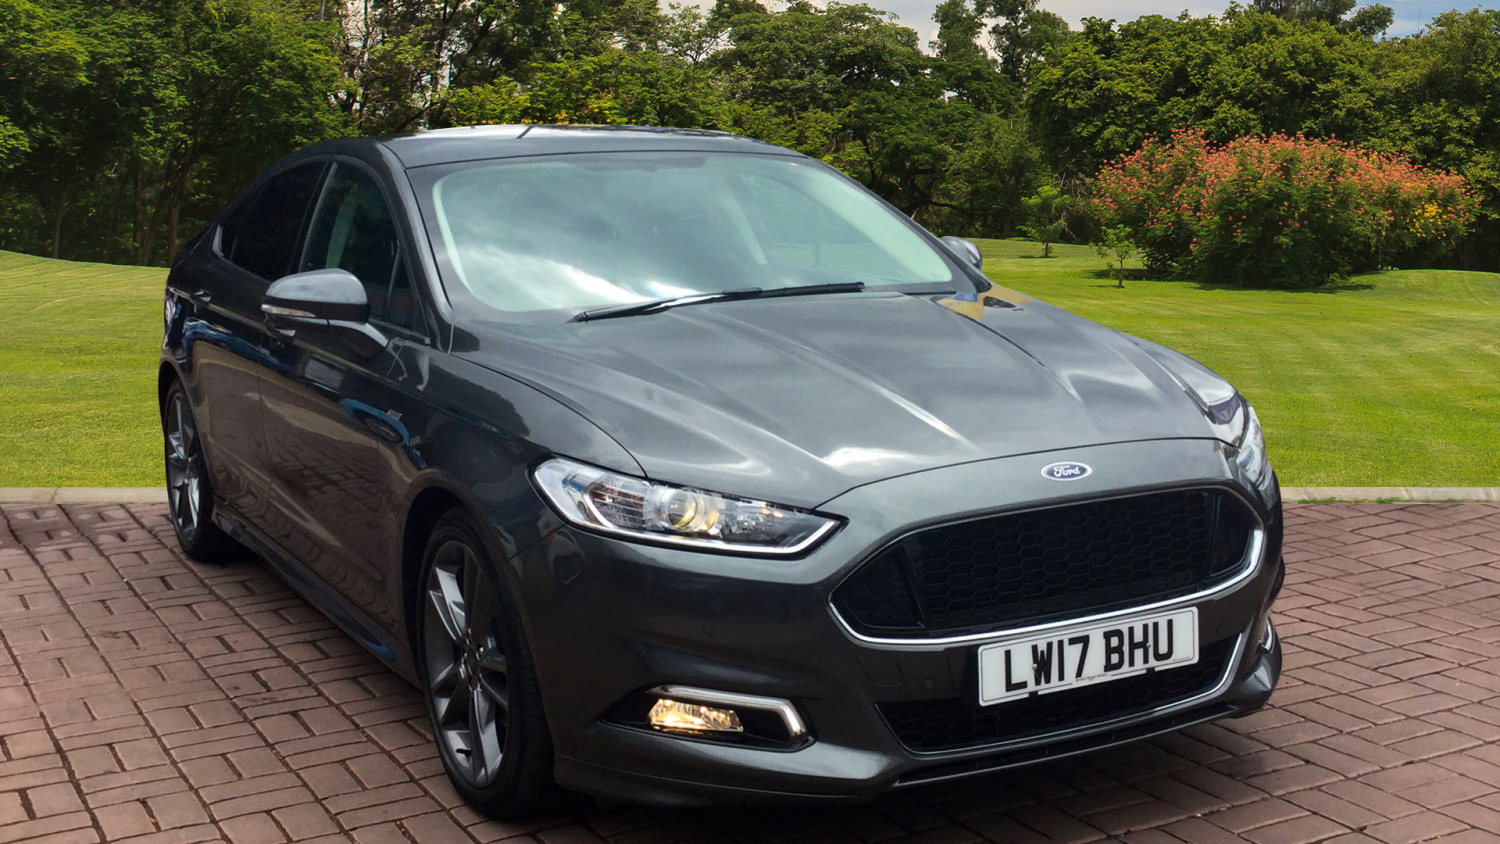 used ford mondeo 2 0 tdci 180 st line edition 5dr diesel hatchback for sale bristol street motors. Black Bedroom Furniture Sets. Home Design Ideas